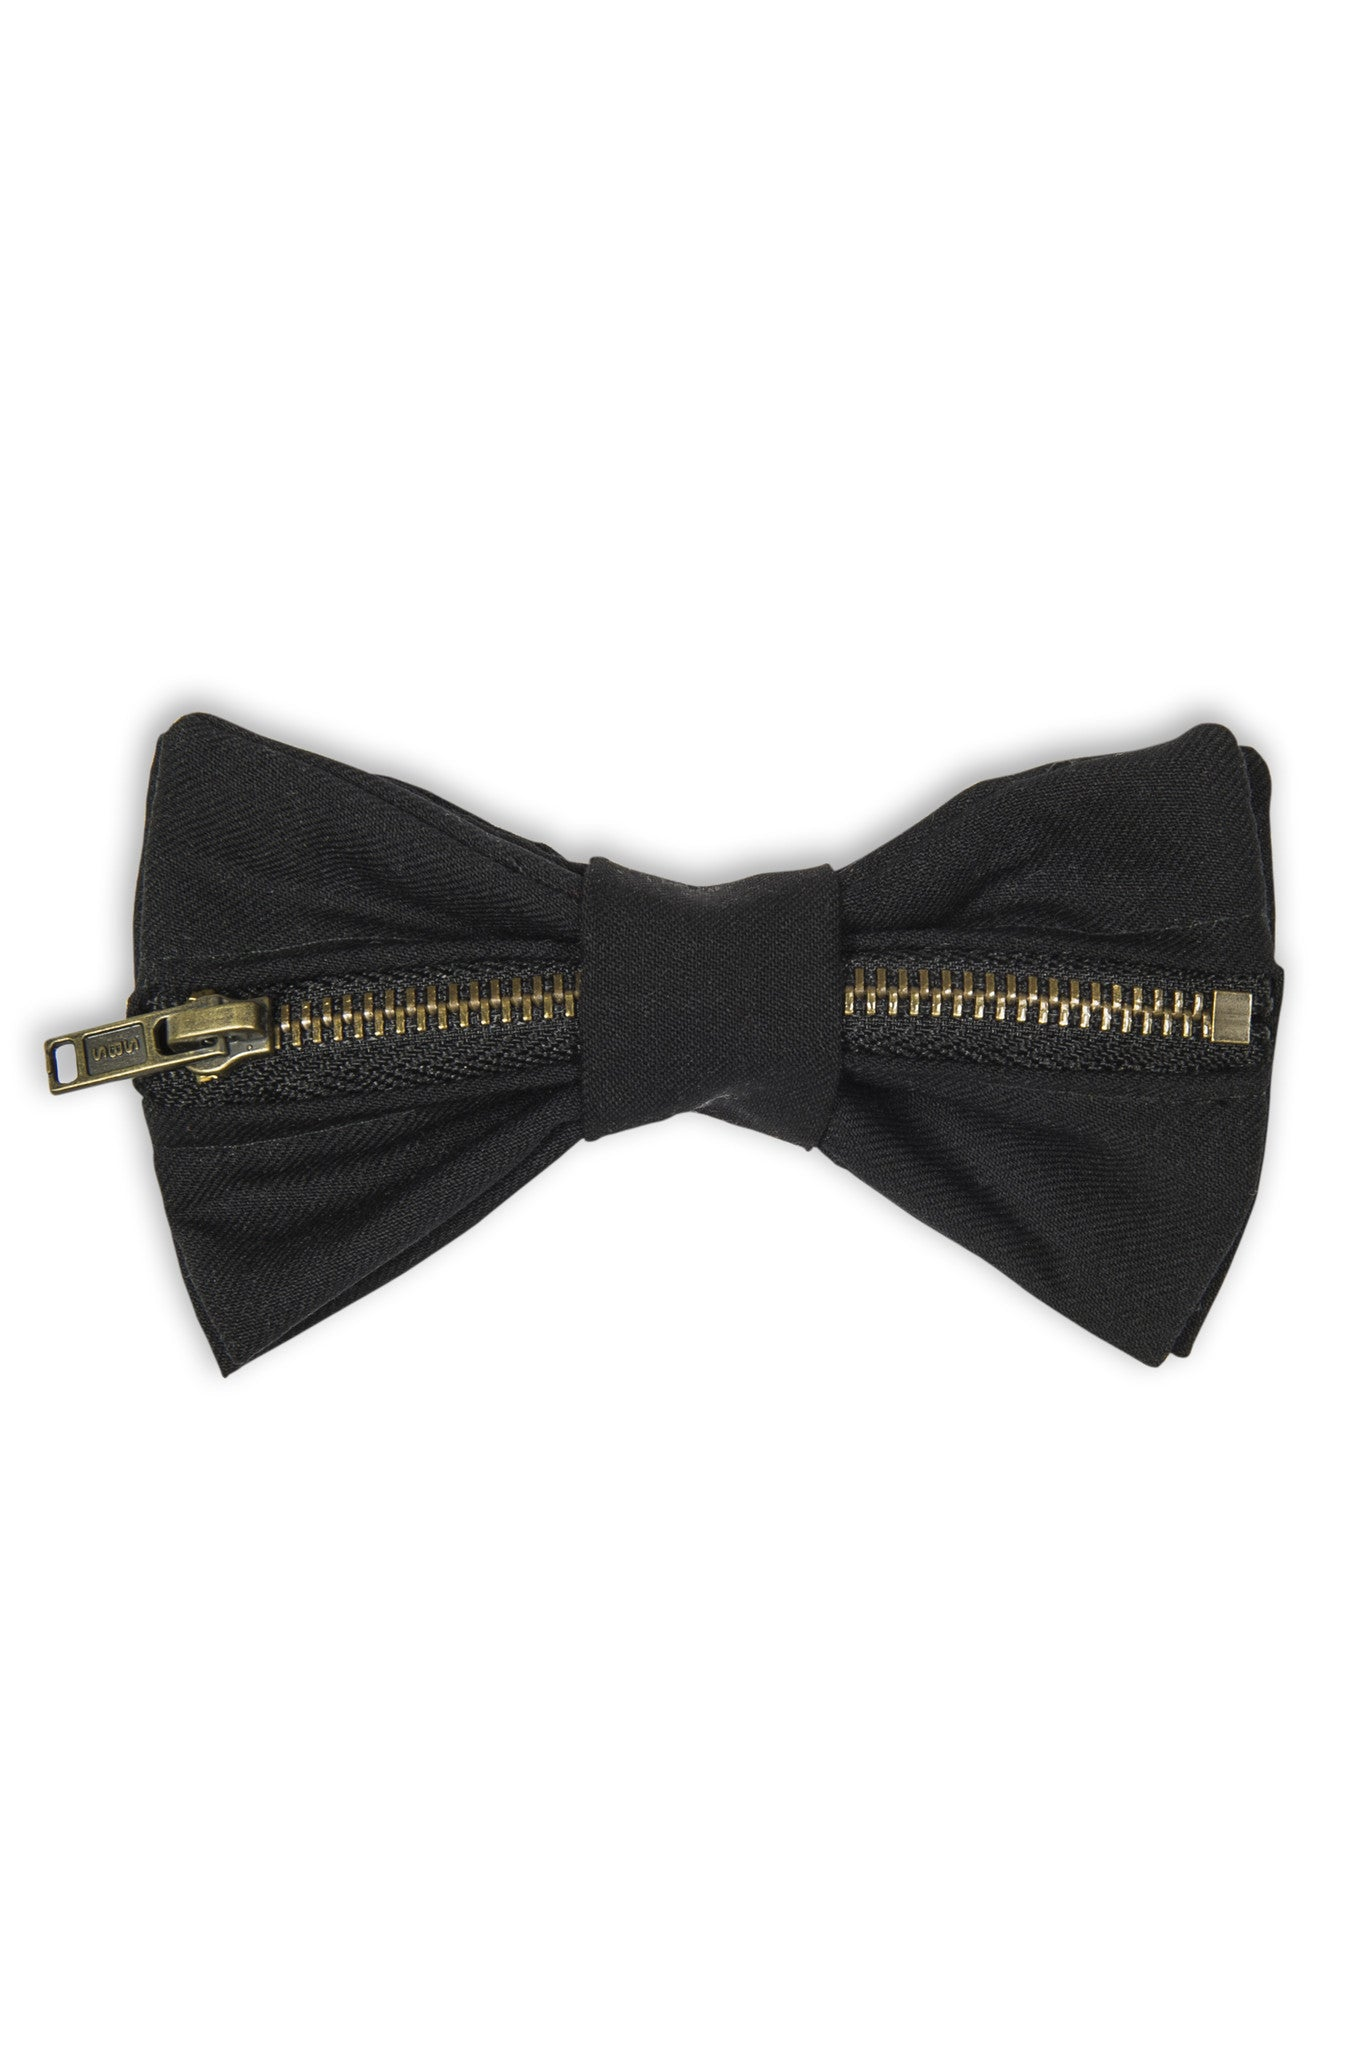 Noeud papillon avec fermeture éclair horizontale - handmade wool Bow tie with horizontal zipper